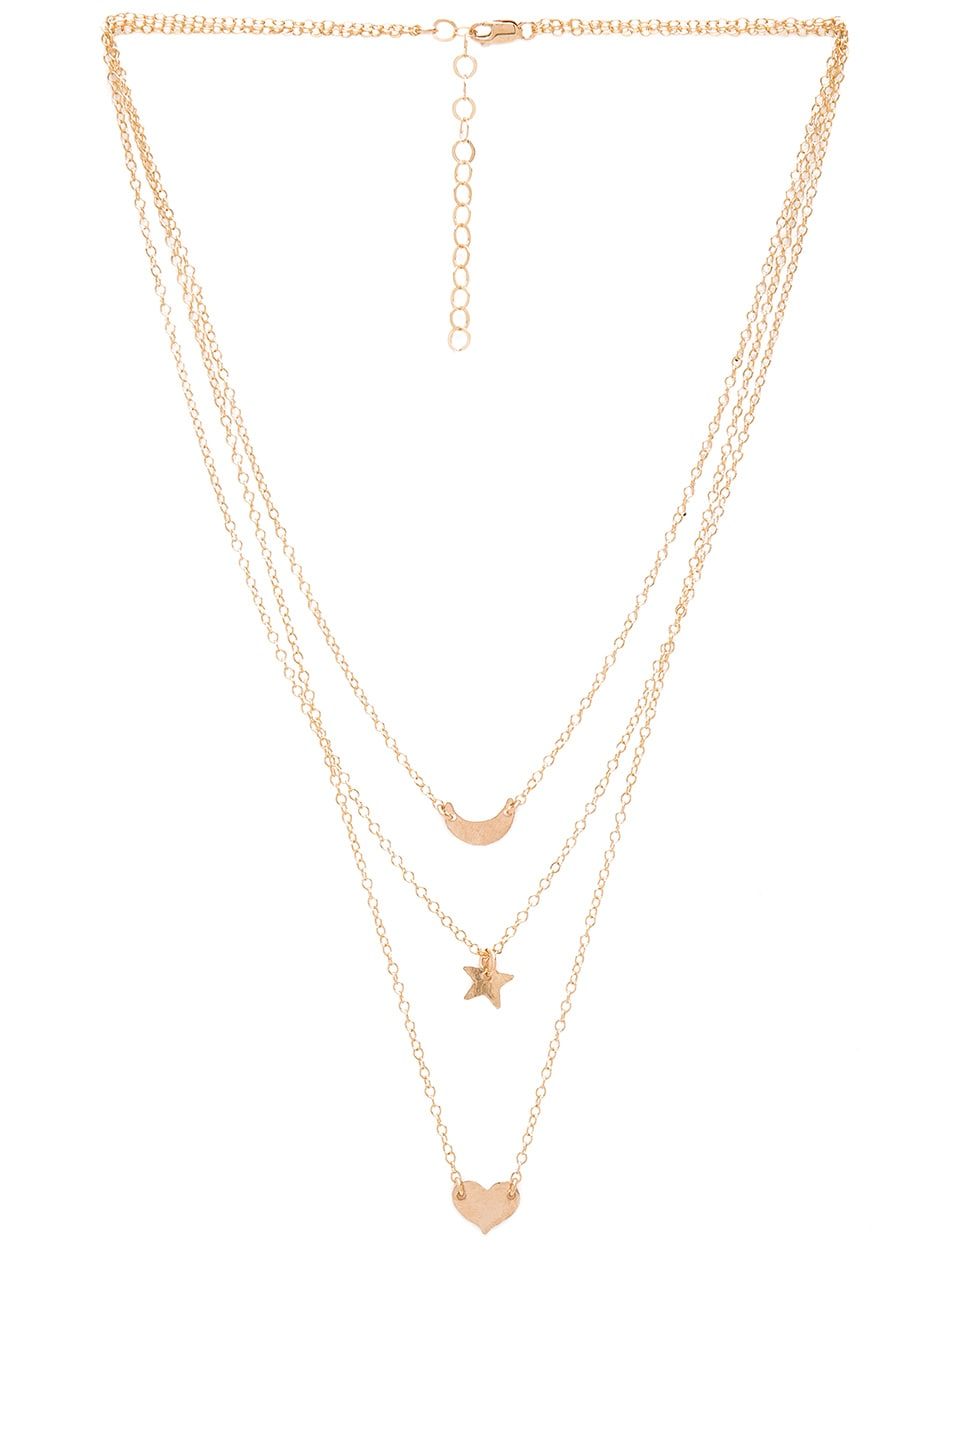 Mimi & Lu Wanderlust Necklace in Gold Fill